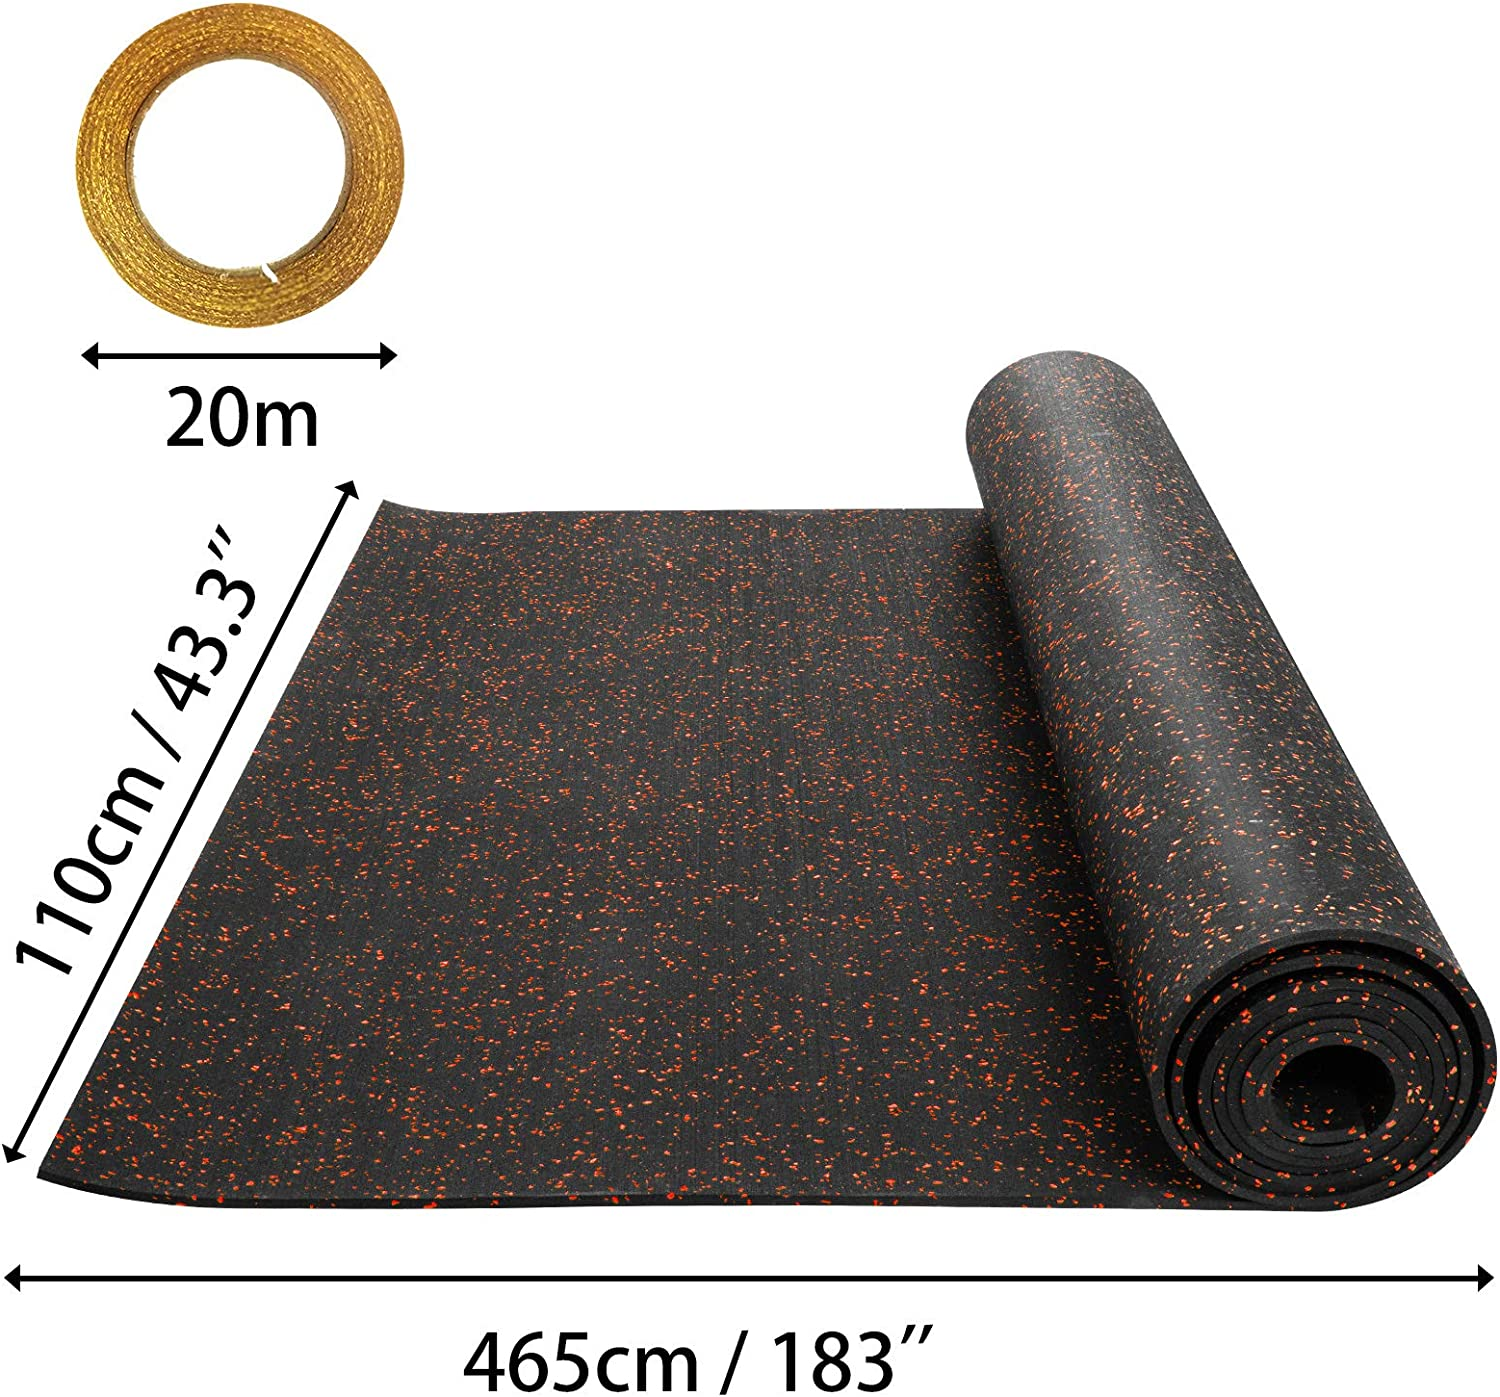 Happybuy 3.6 x 10.2 Ft Blue 6.35mm Heavy Duty Gym Flooring Rubber Rolls Vulcanized Rubber Flooring Equipment Mats for Gym or Home